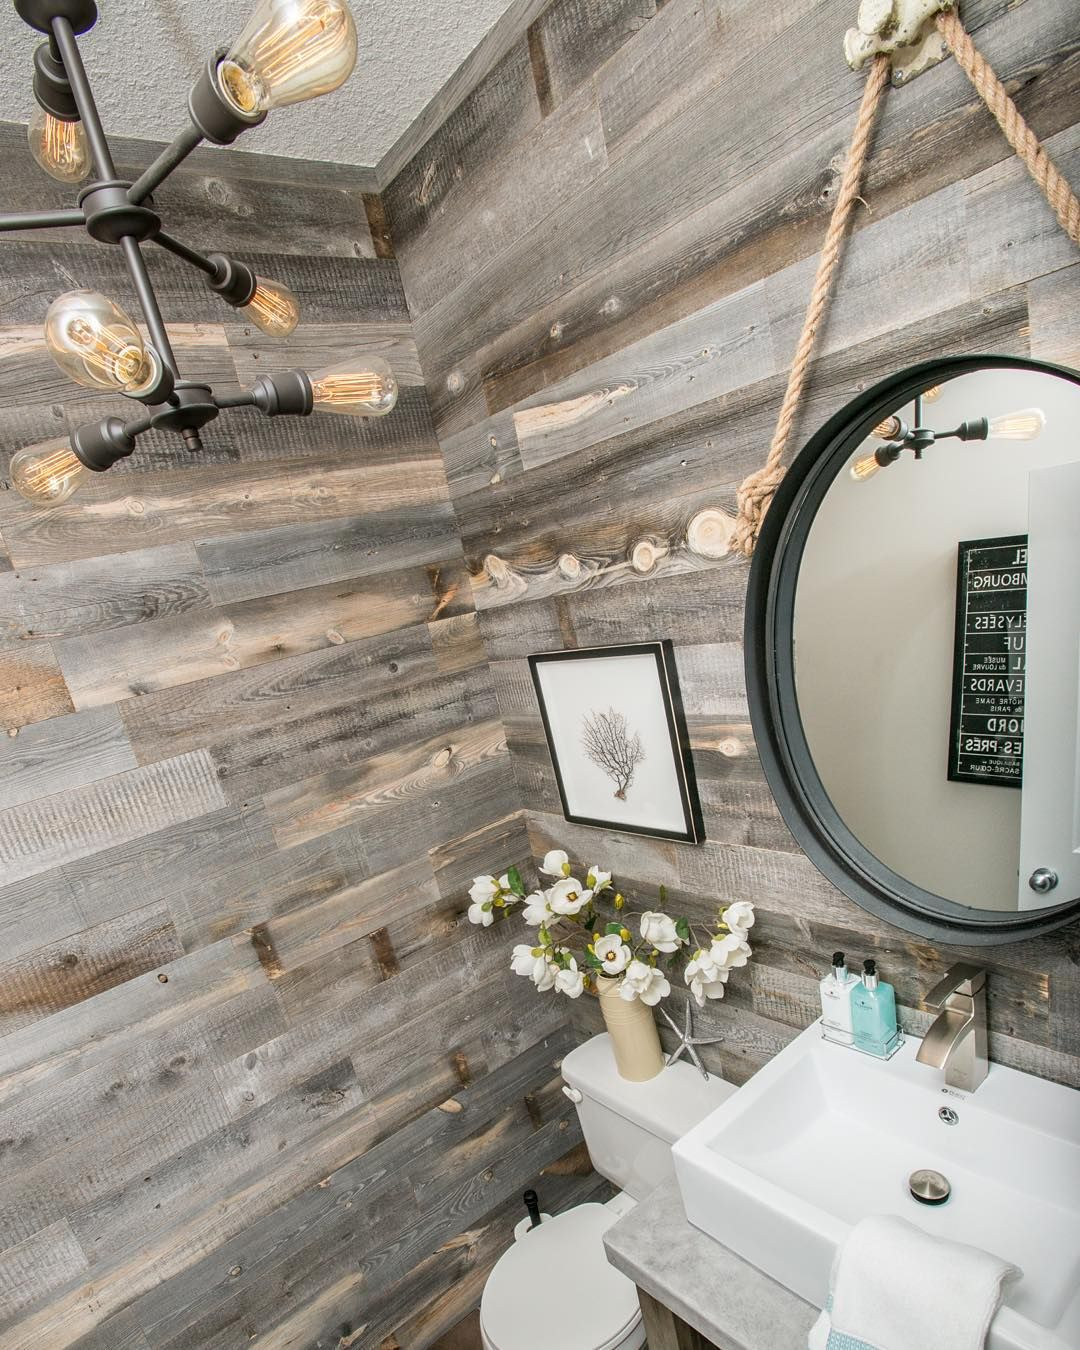 Diy Easy Peel And Stick Wood Wall Decor Stick On Wood Wall Wood